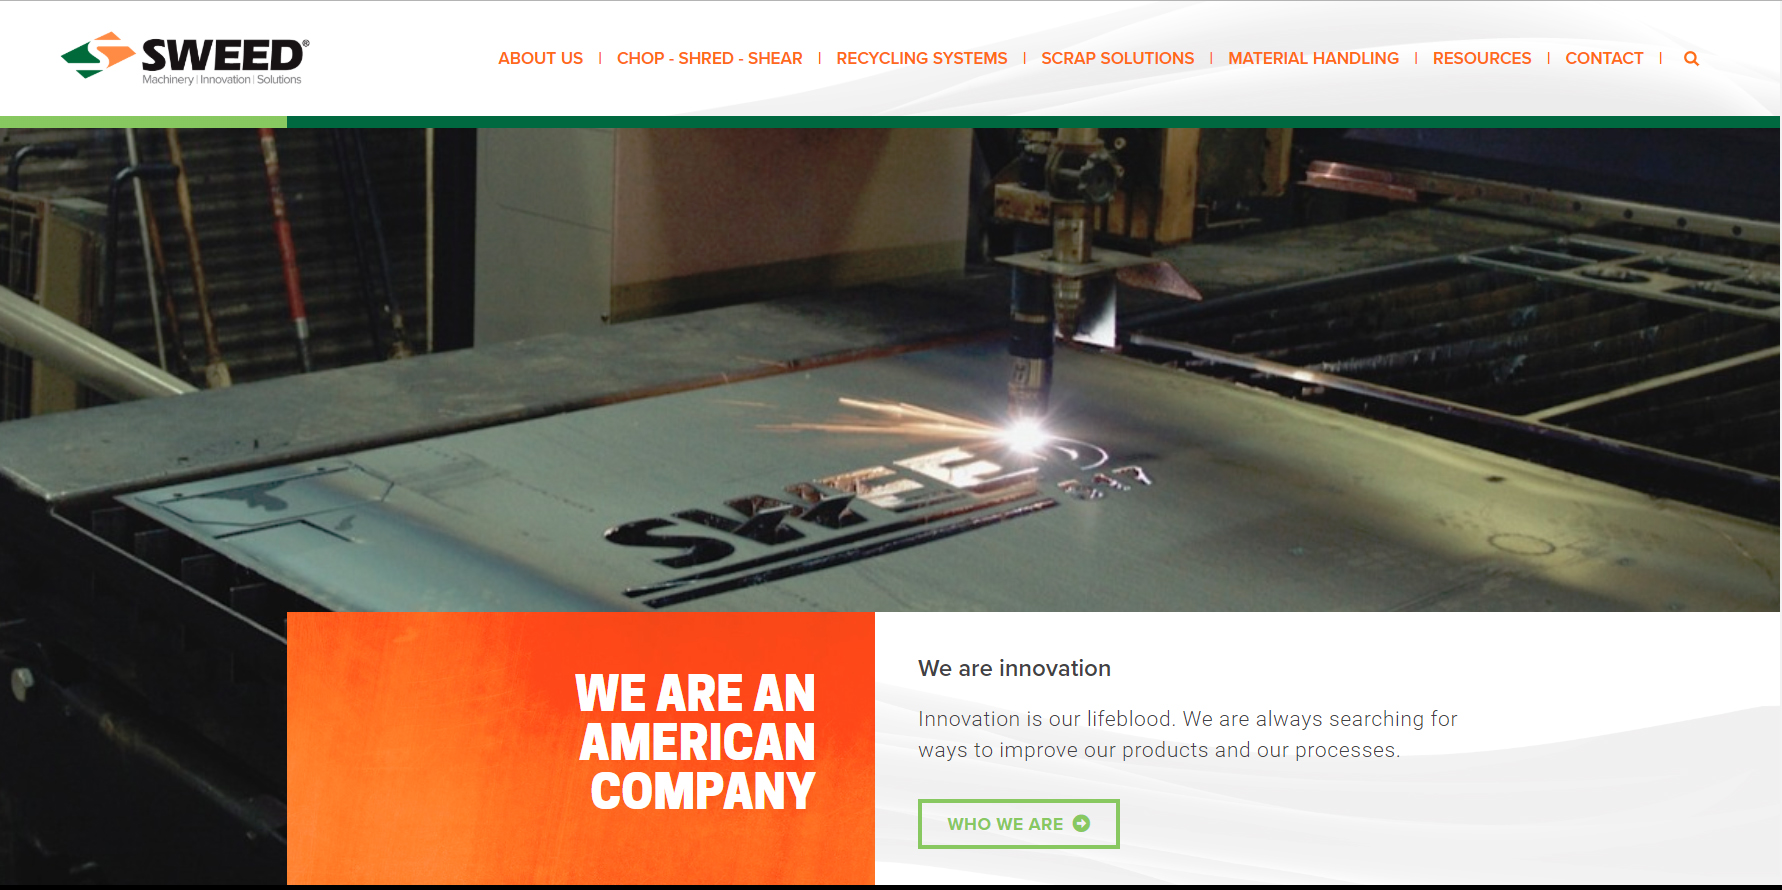 The home page of Sweed's new website.